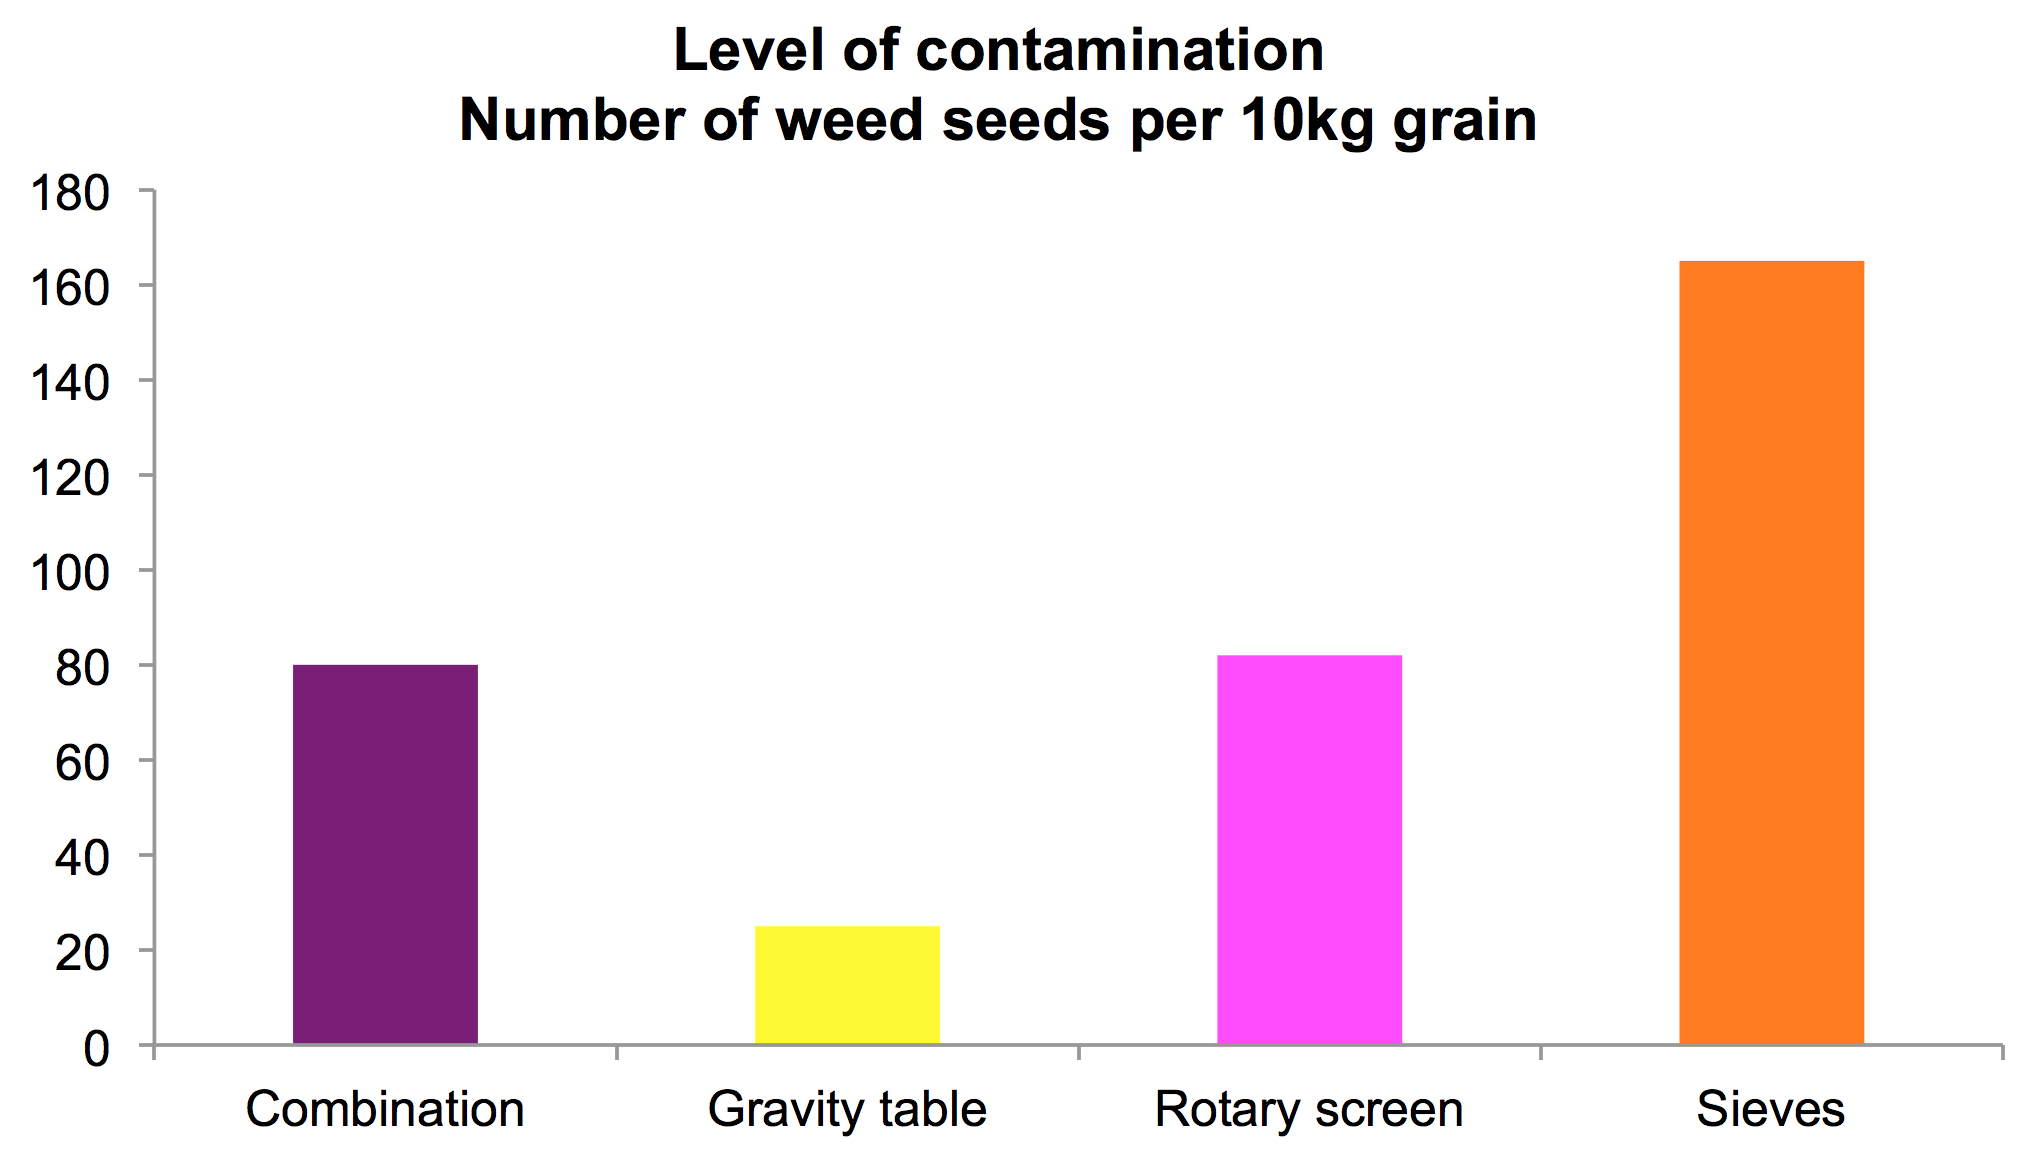 Level of contamination by cleaning method